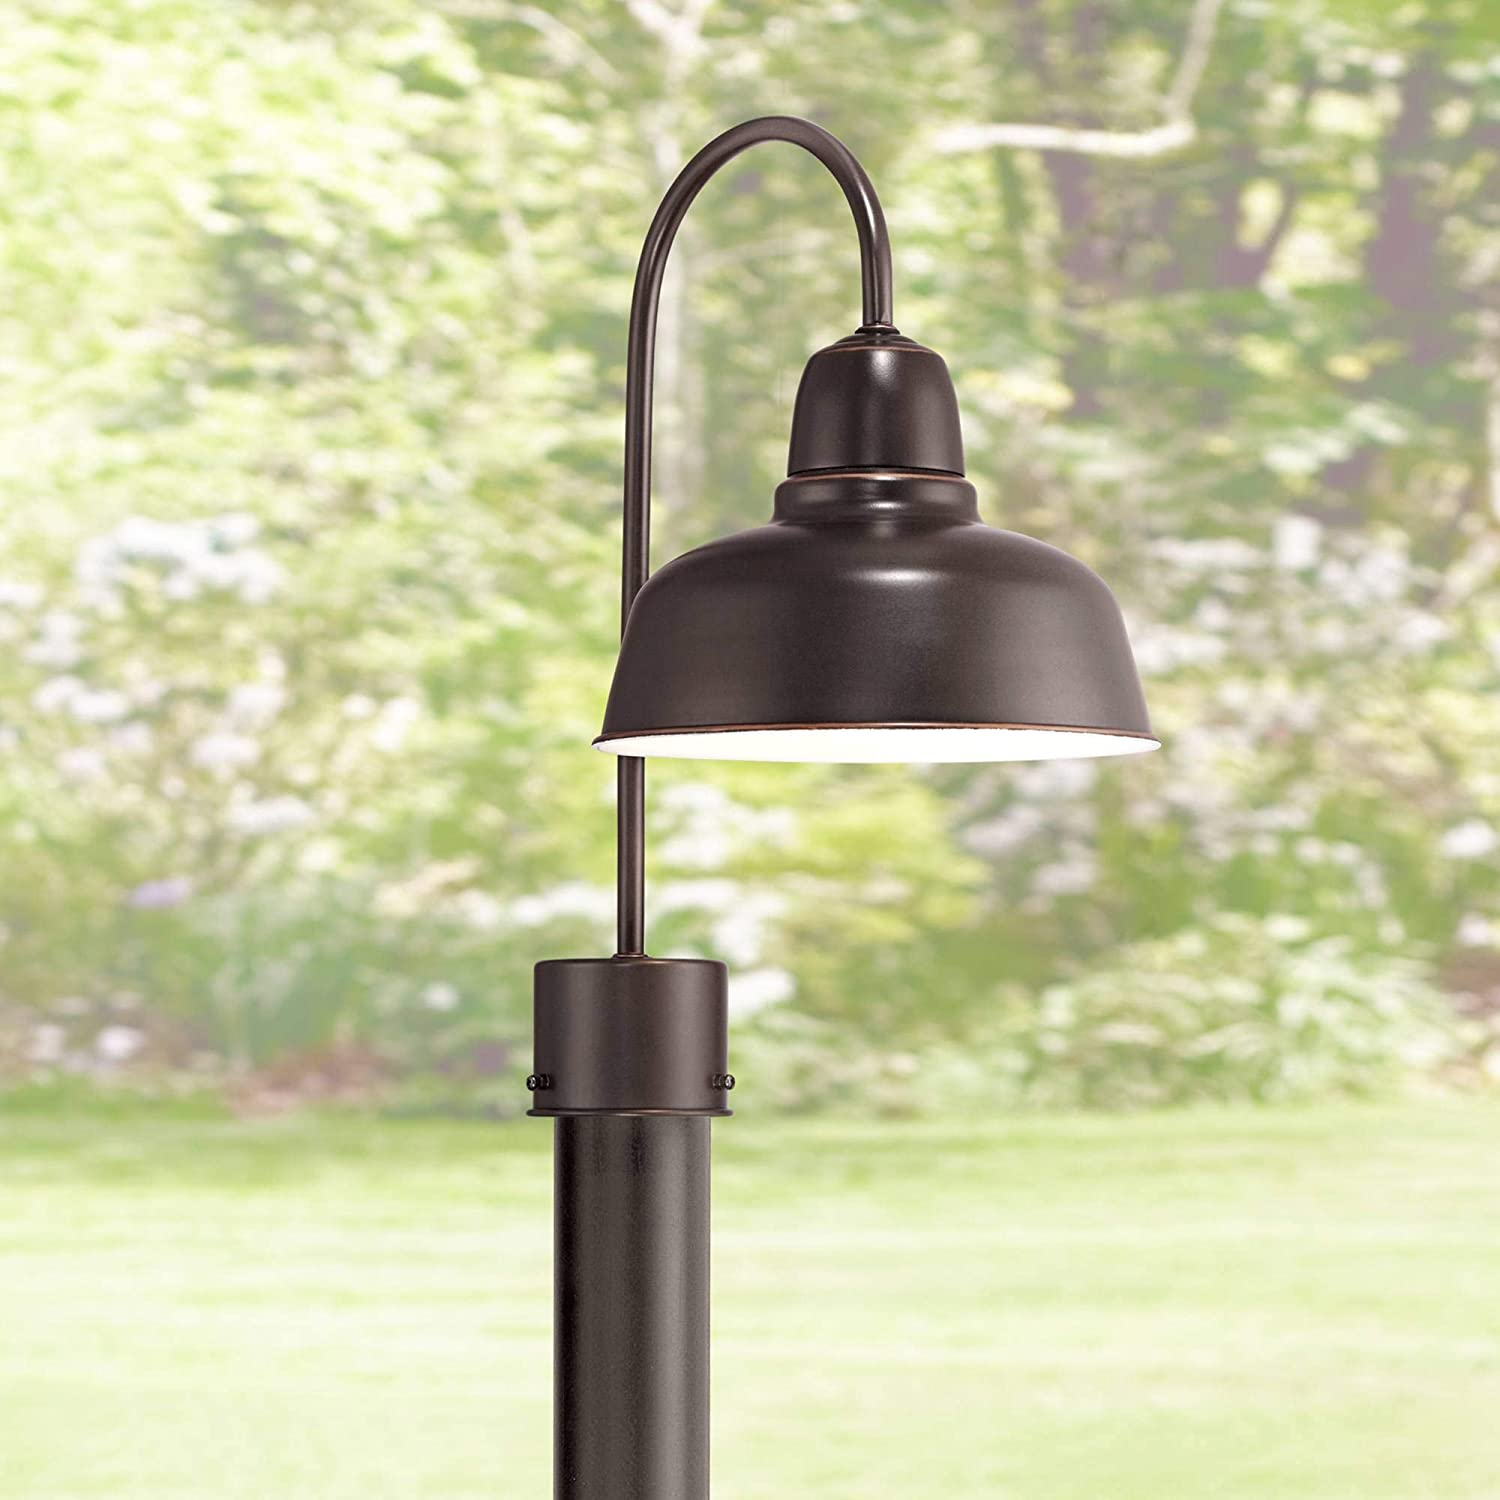 "Urban Barn Industrial Outdoor Post Light Fixture Oil Rubbed Bronze 15 3/4"" for Exterior Garden Yard Patio Pathway"